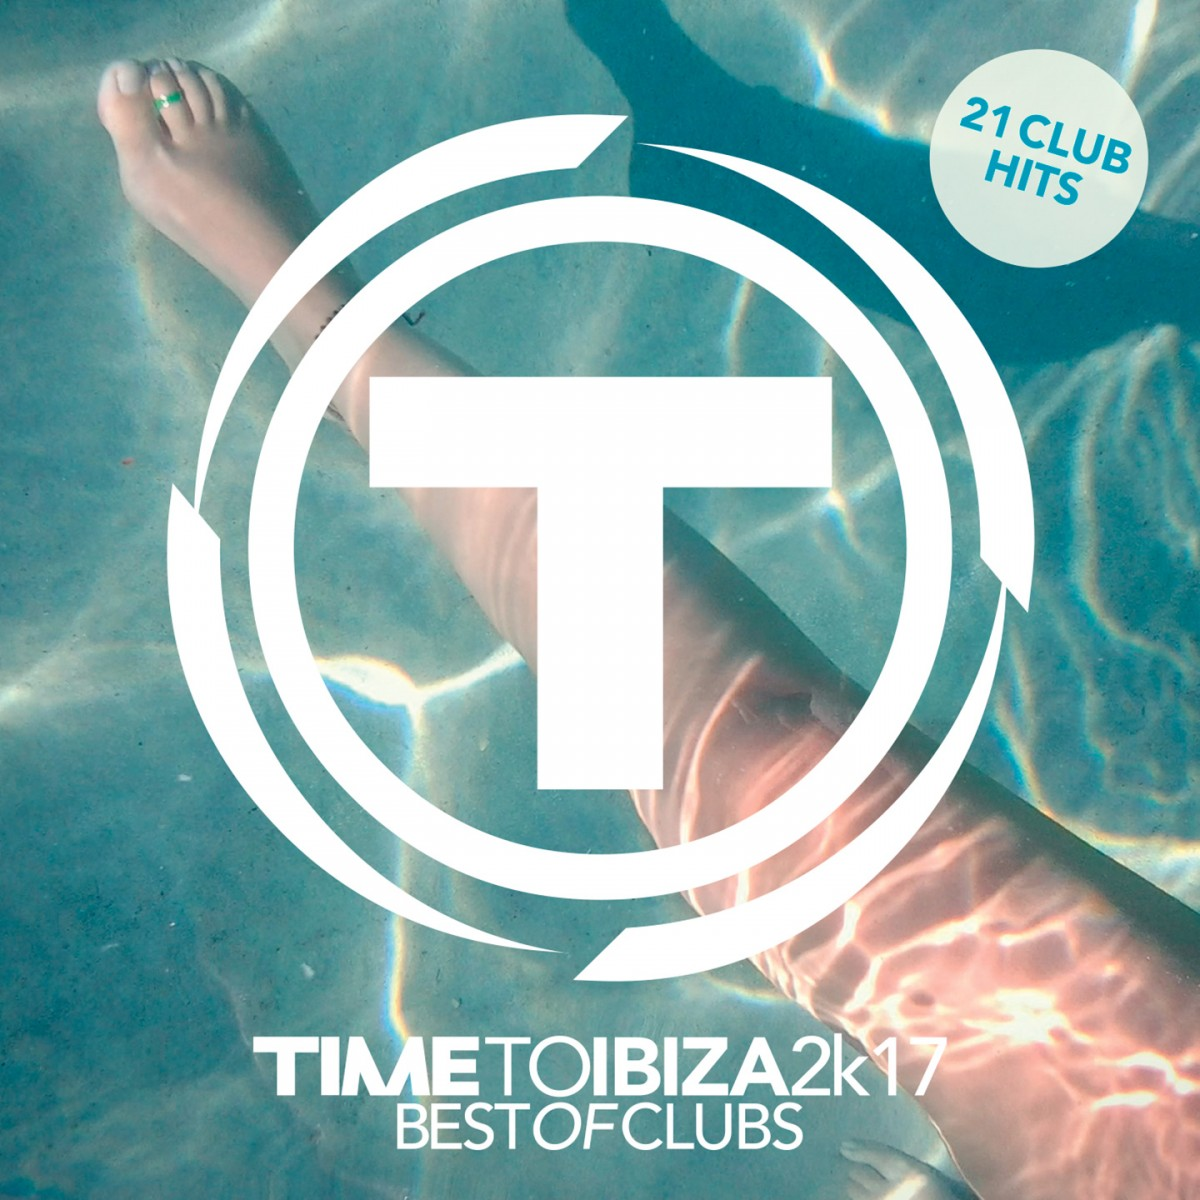 TIMETOIBIZA 2k17 Best Of Clubs